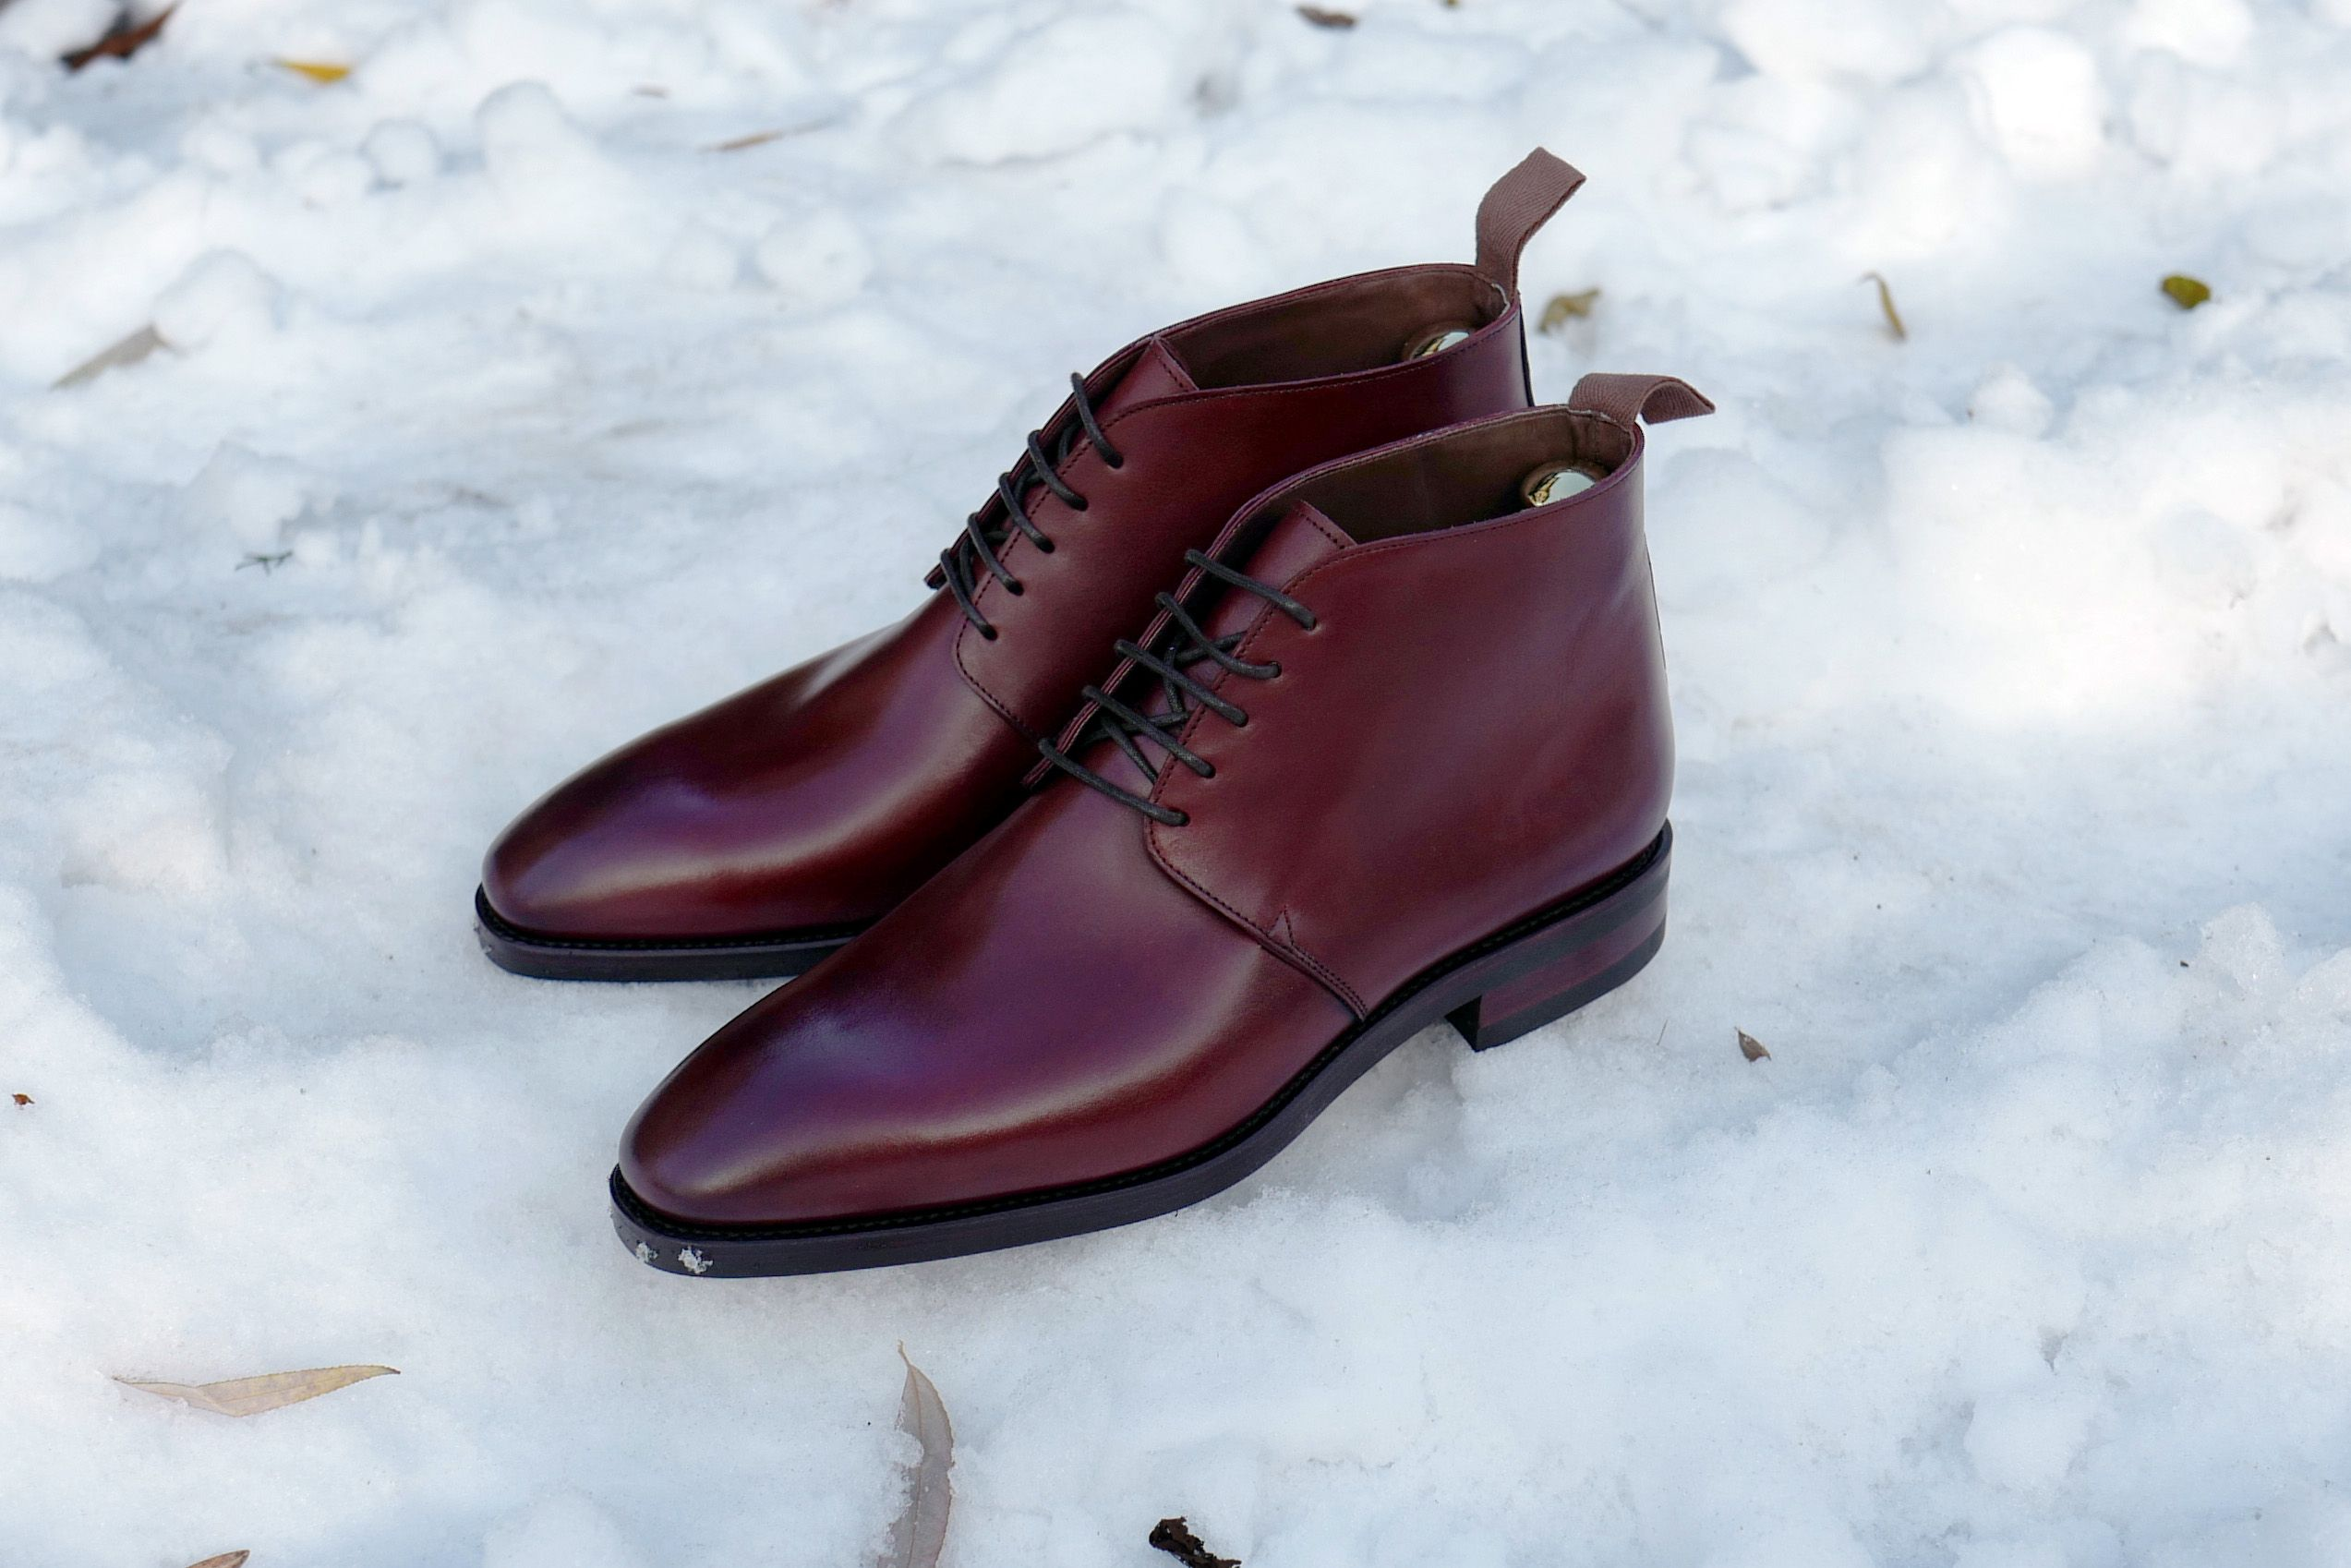 336f2efa5 Carmina Burgundy Chukka with Dianite Sole Model 905 in the Simpson last